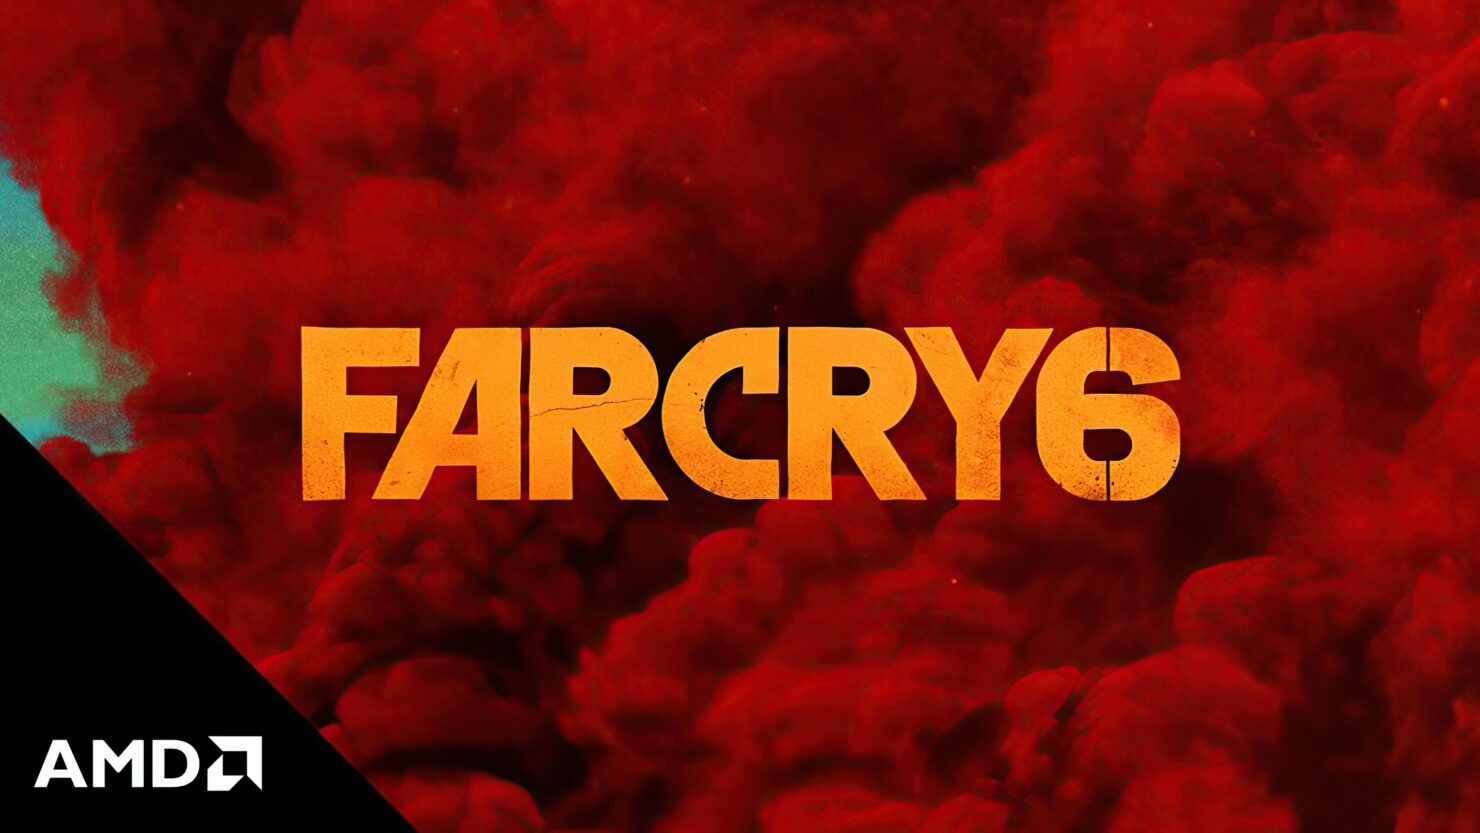 far-cry-6-pc-requires-graphics-cards-with-over-11-gb-vram-to-load-high-resolution-textures-properly